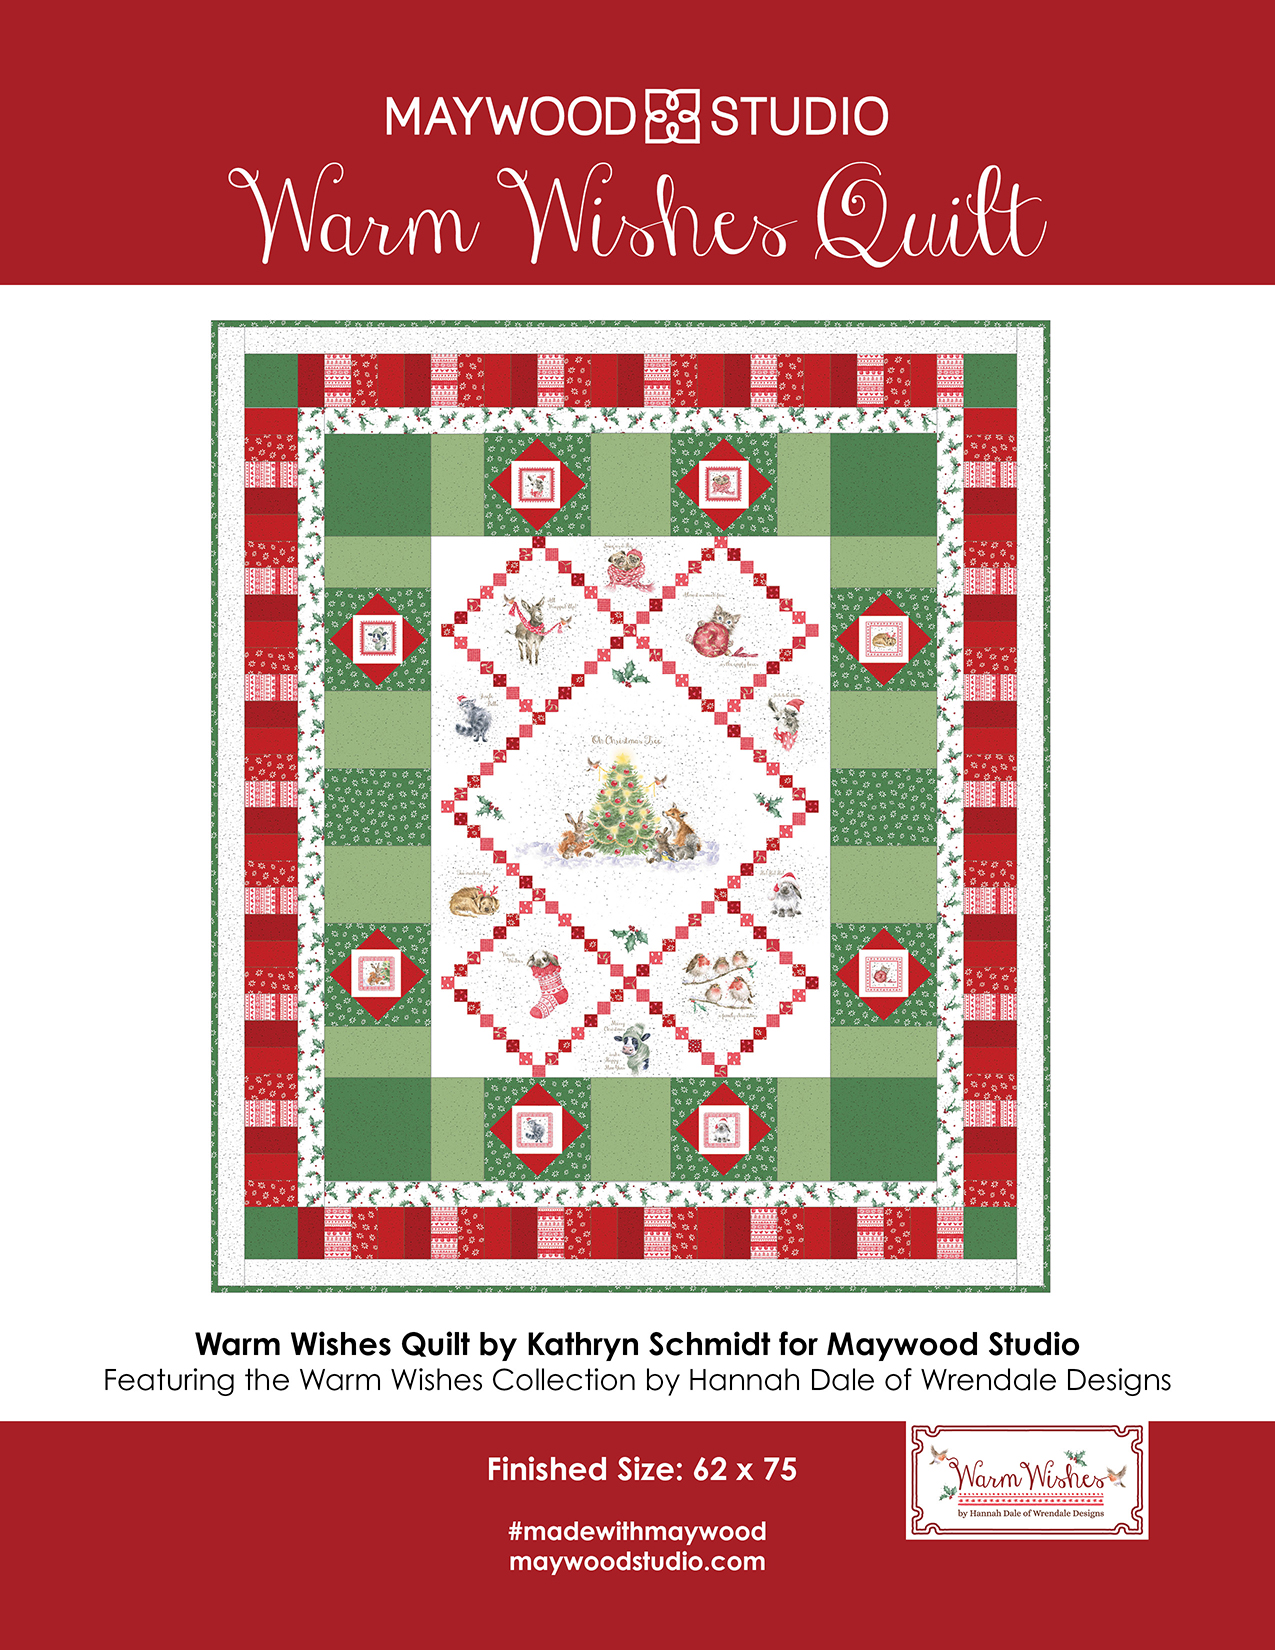 Warm Wishes Quilt